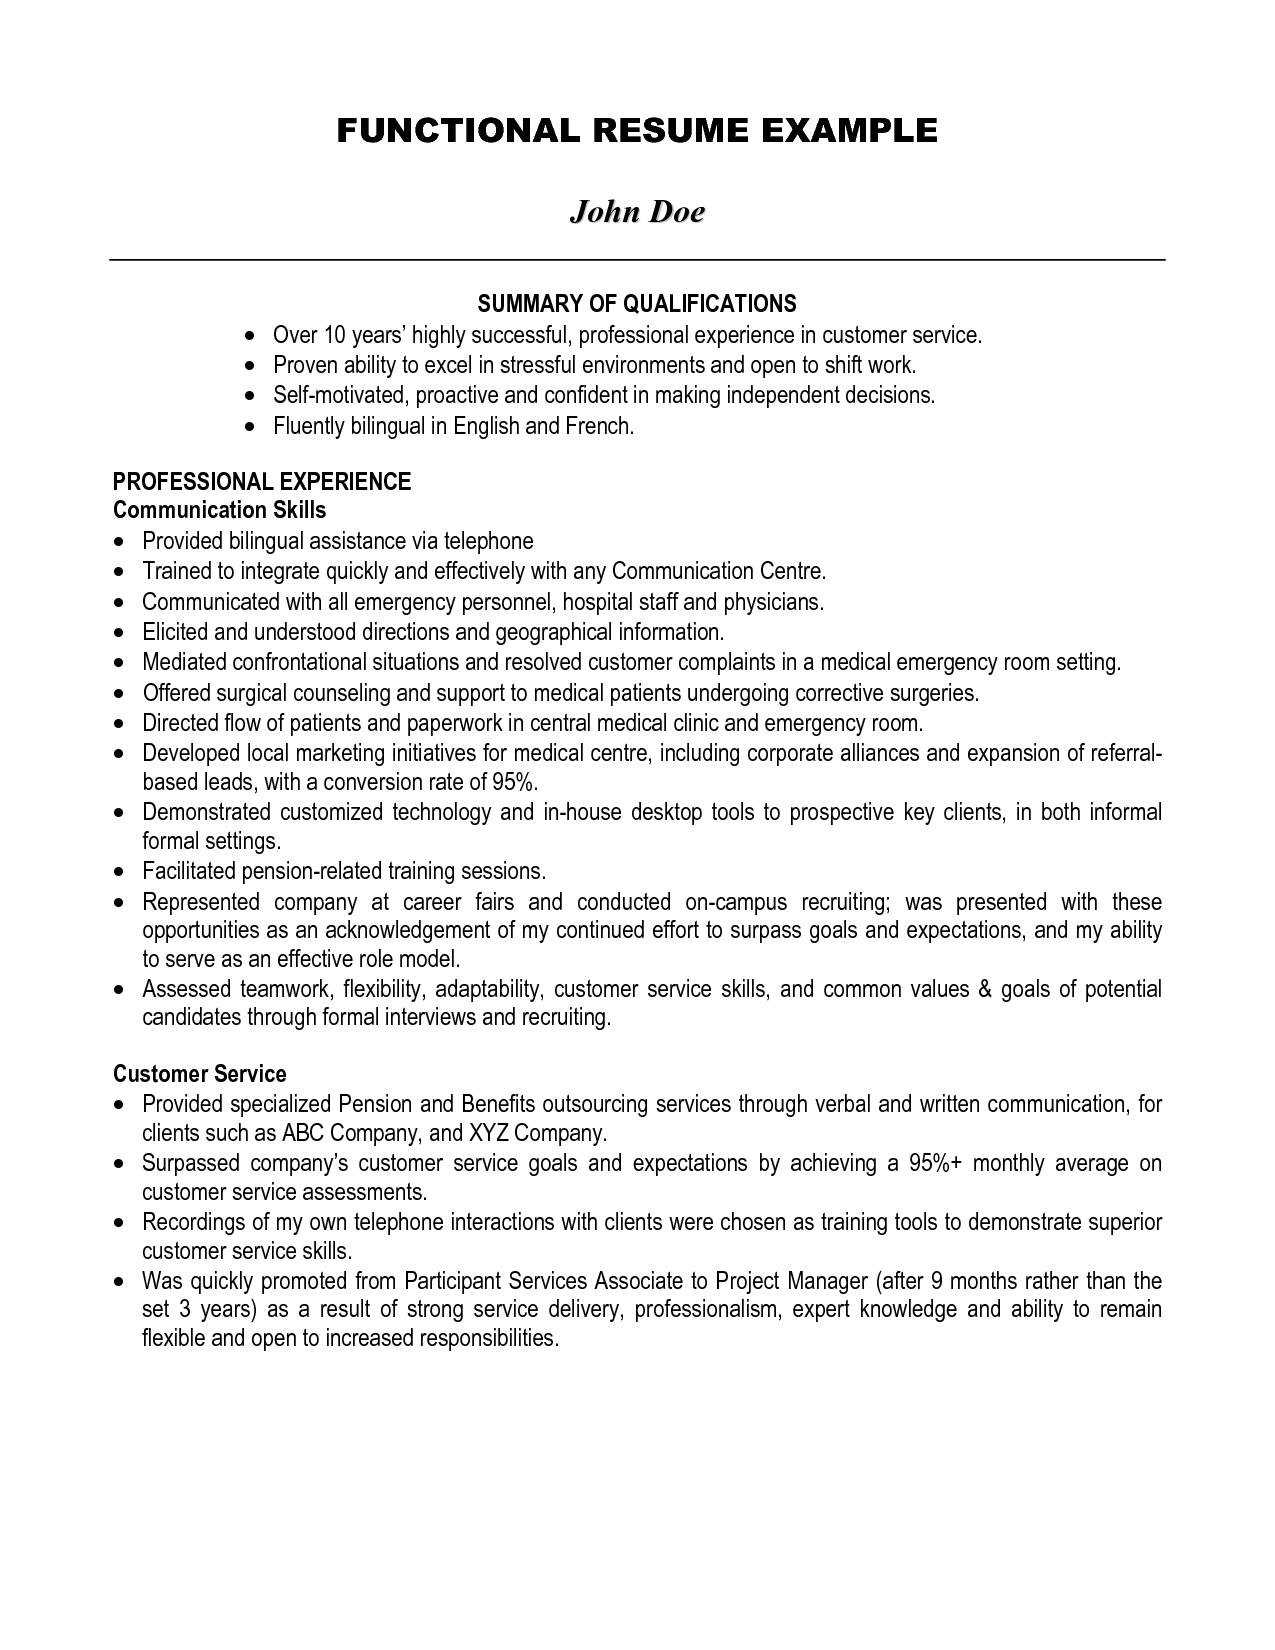 Student Resume Summary Of Qualifications Best Summary Of Qualifications Resume for 2016